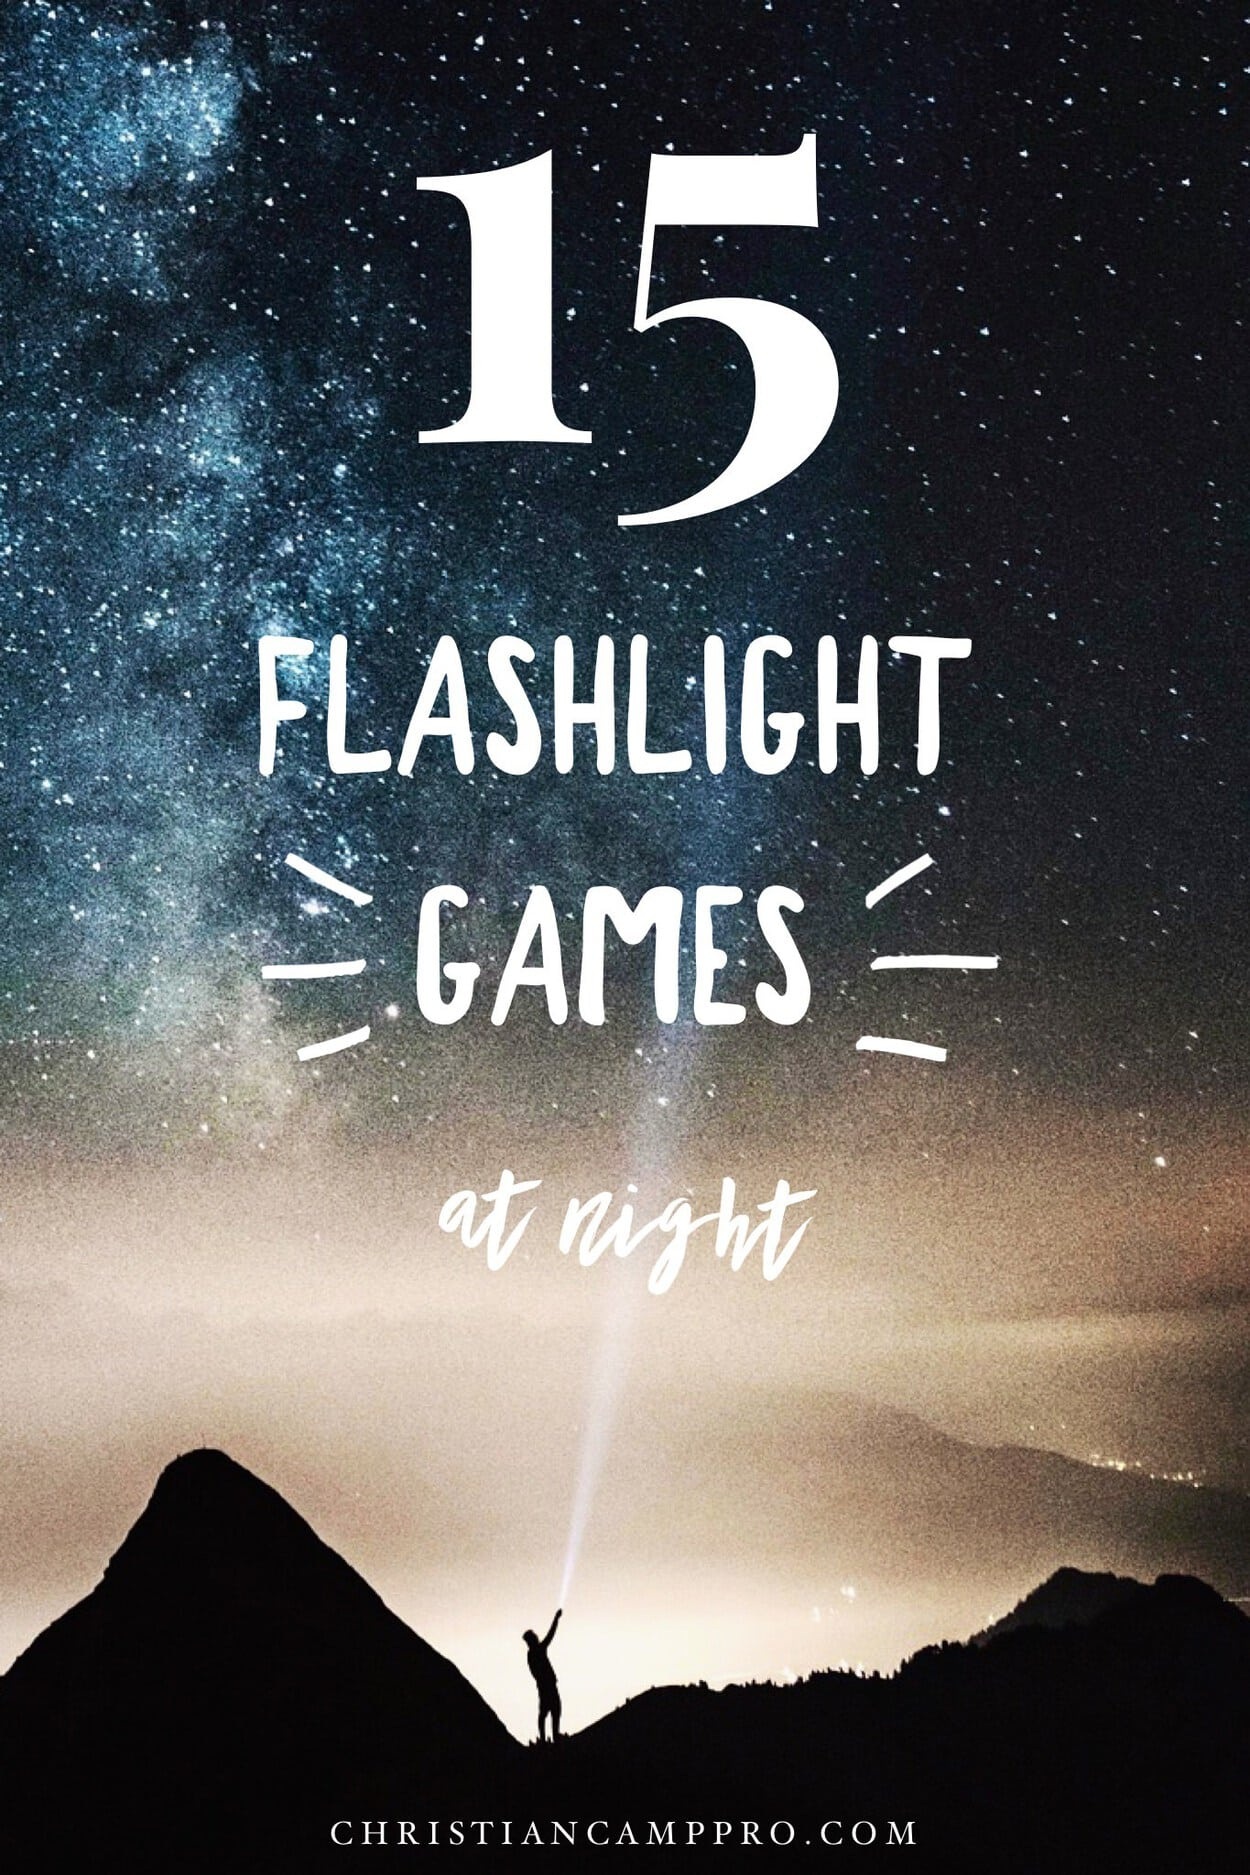 flashlight games at night